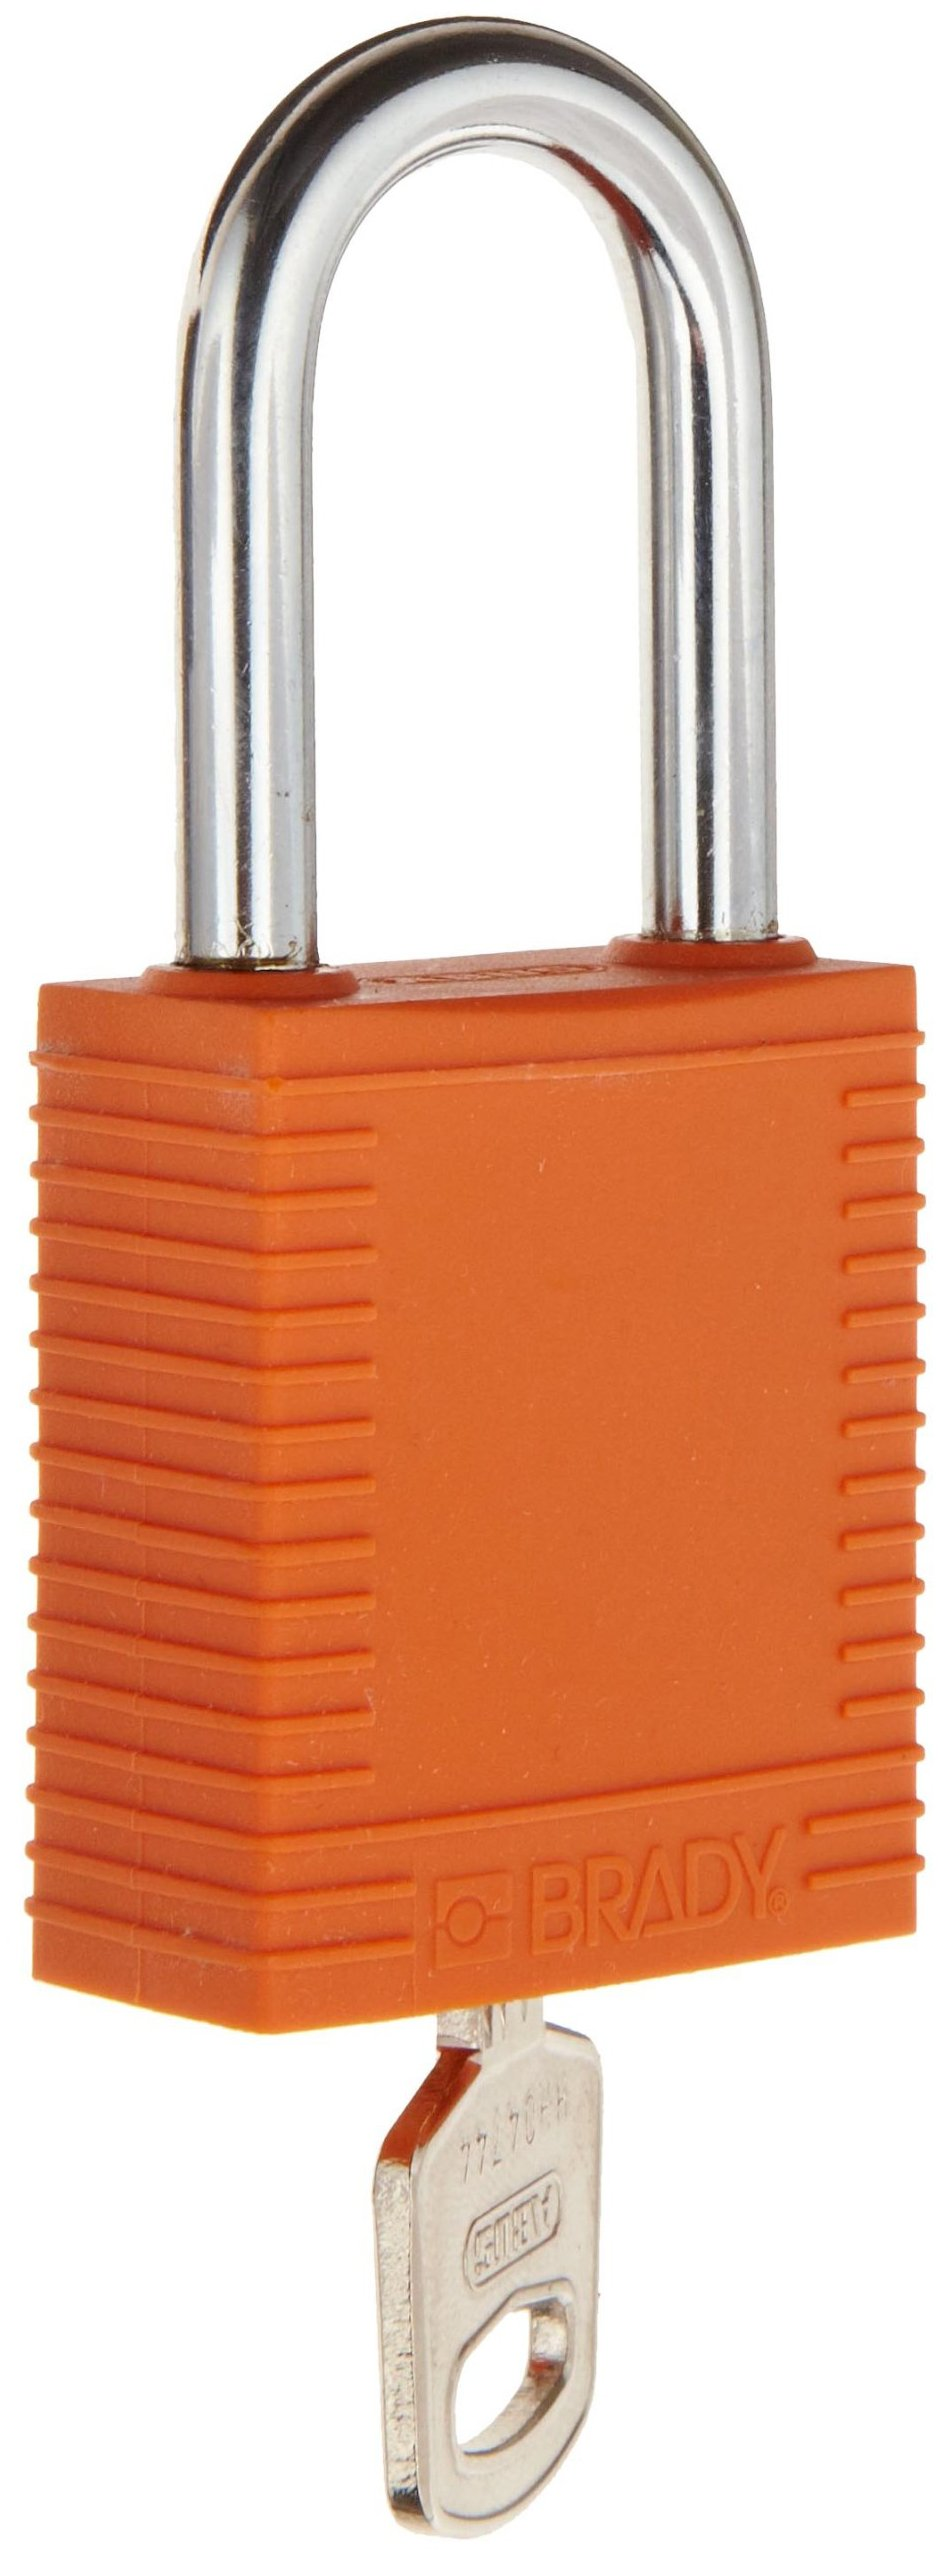 Brady Plastic Lockout/Tagout Padlock, Keyed Different, 1-3/4'' Body Length, 1-1/2'' Shackle Clearance, Orange (Pack of 6)